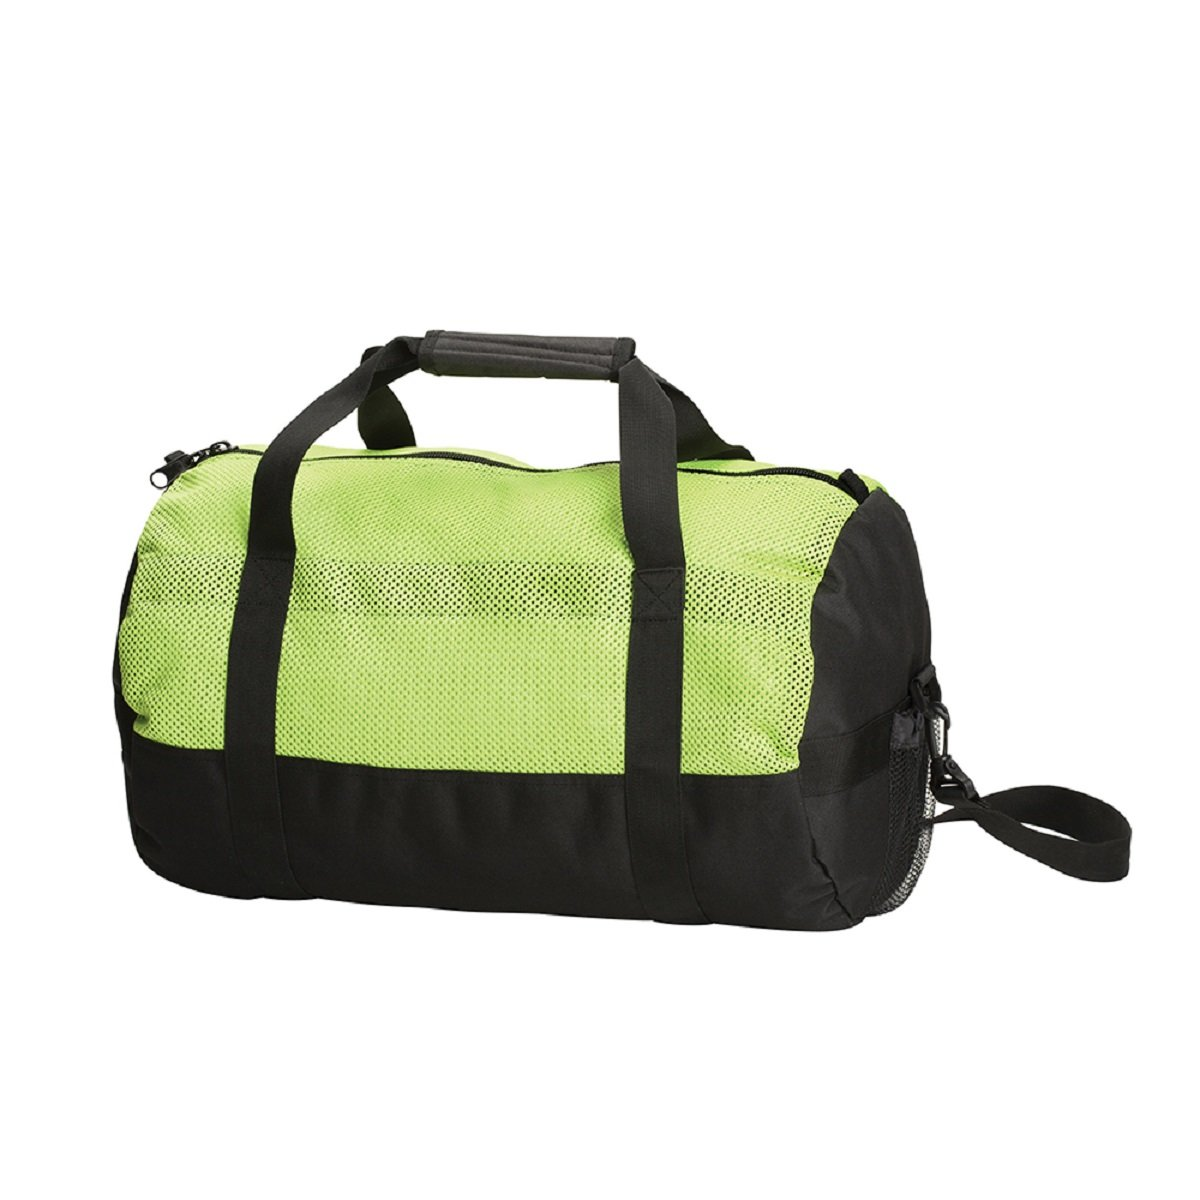 STANSPORT MESH TOP ROLL BAG - 12 IN X 20 IN - GREEN/BLACK, Case of 12 by DollarItemDirect